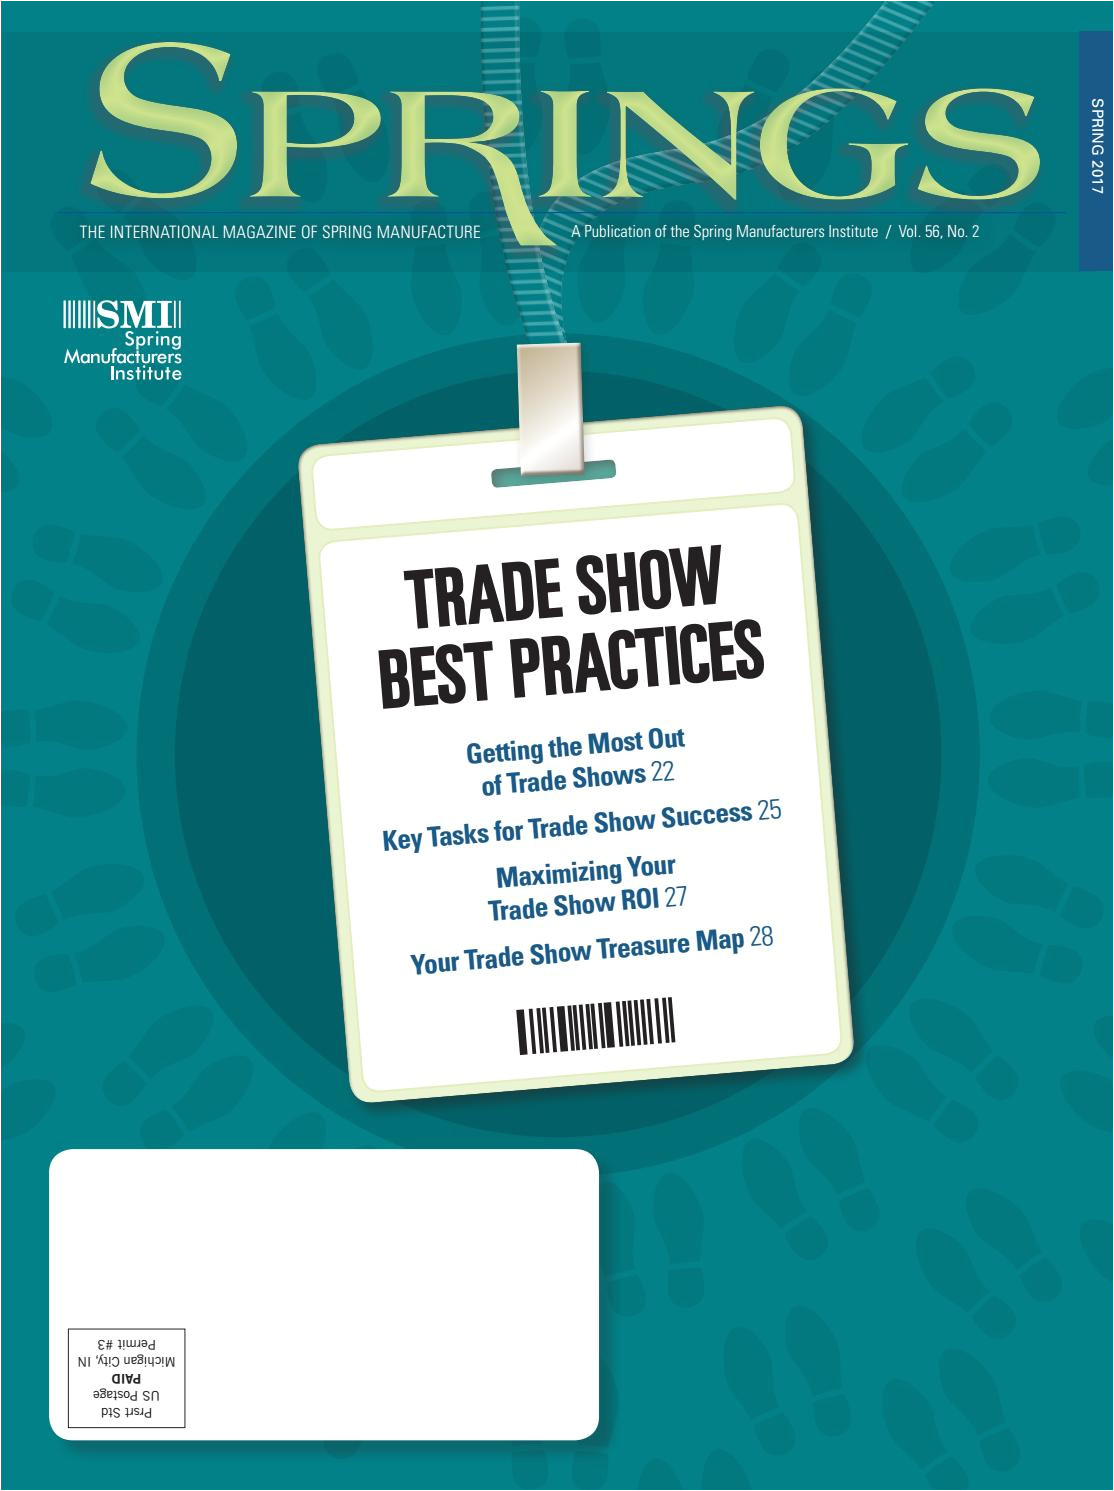 Beautiful Card Technology (suzhou) Co. Ltd Springs Spring 2017 Vol 56 No 2 by Spring Manufacturers